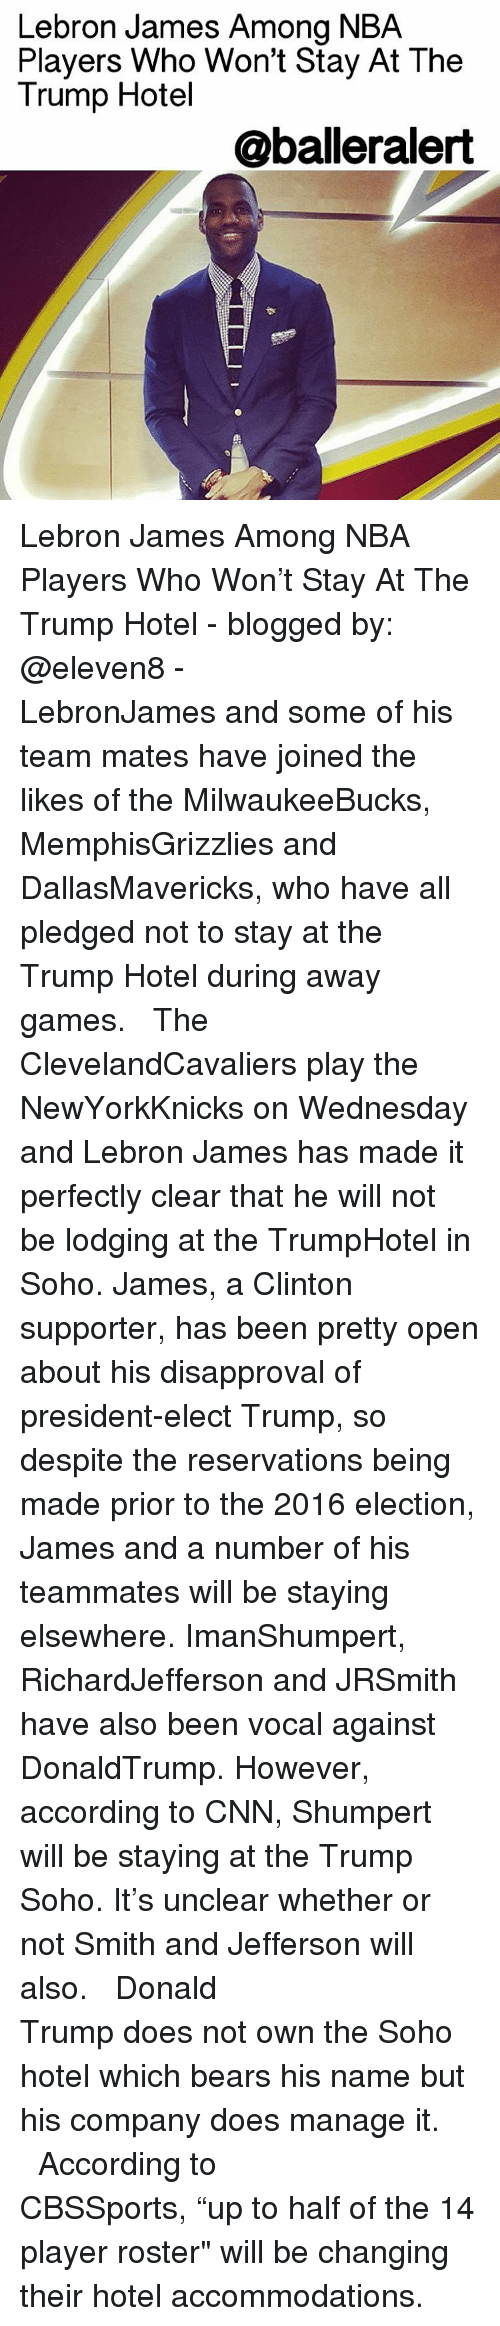 "Disapproval: Lebron James Among NBA  Players Who Won't Stay At The  Trump Hotel  @balleralert Lebron James Among NBA Players Who Won't Stay At The Trump Hotel - blogged by: @eleven8 - ⠀⠀⠀⠀⠀⠀⠀⠀⠀ ⠀⠀⠀⠀⠀⠀⠀⠀⠀ LebronJames and some of his team mates have joined the likes of the MilwaukeeBucks, MemphisGrizzlies and DallasMavericks, who have all pledged not to stay at the Trump Hotel during away games. ⠀⠀⠀⠀⠀⠀⠀⠀⠀ ⠀⠀⠀⠀⠀⠀⠀⠀⠀ The ClevelandCavaliers play the NewYorkKnicks on Wednesday and Lebron James has made it perfectly clear that he will not be lodging at the TrumpHotel in Soho. James, a Clinton supporter, has been pretty open about his disapproval of president-elect Trump, so despite the reservations being made prior to the 2016 election, James and a number of his teammates will be staying elsewhere. ImanShumpert, RichardJefferson and JRSmith have also been vocal against DonaldTrump. However, according to CNN, Shumpert will be staying at the Trump Soho. It's unclear whether or not Smith and Jefferson will also. ⠀⠀⠀⠀⠀⠀⠀⠀⠀ ⠀⠀⠀⠀⠀⠀⠀⠀⠀ Donald Trump does not own the Soho hotel which bears his name but his company does manage it. ⠀⠀⠀⠀⠀⠀⠀⠀⠀ ⠀⠀⠀⠀⠀⠀⠀⠀⠀ According to CBSSports, ""up to half of the 14 player roster"" will be changing their hotel accommodations."